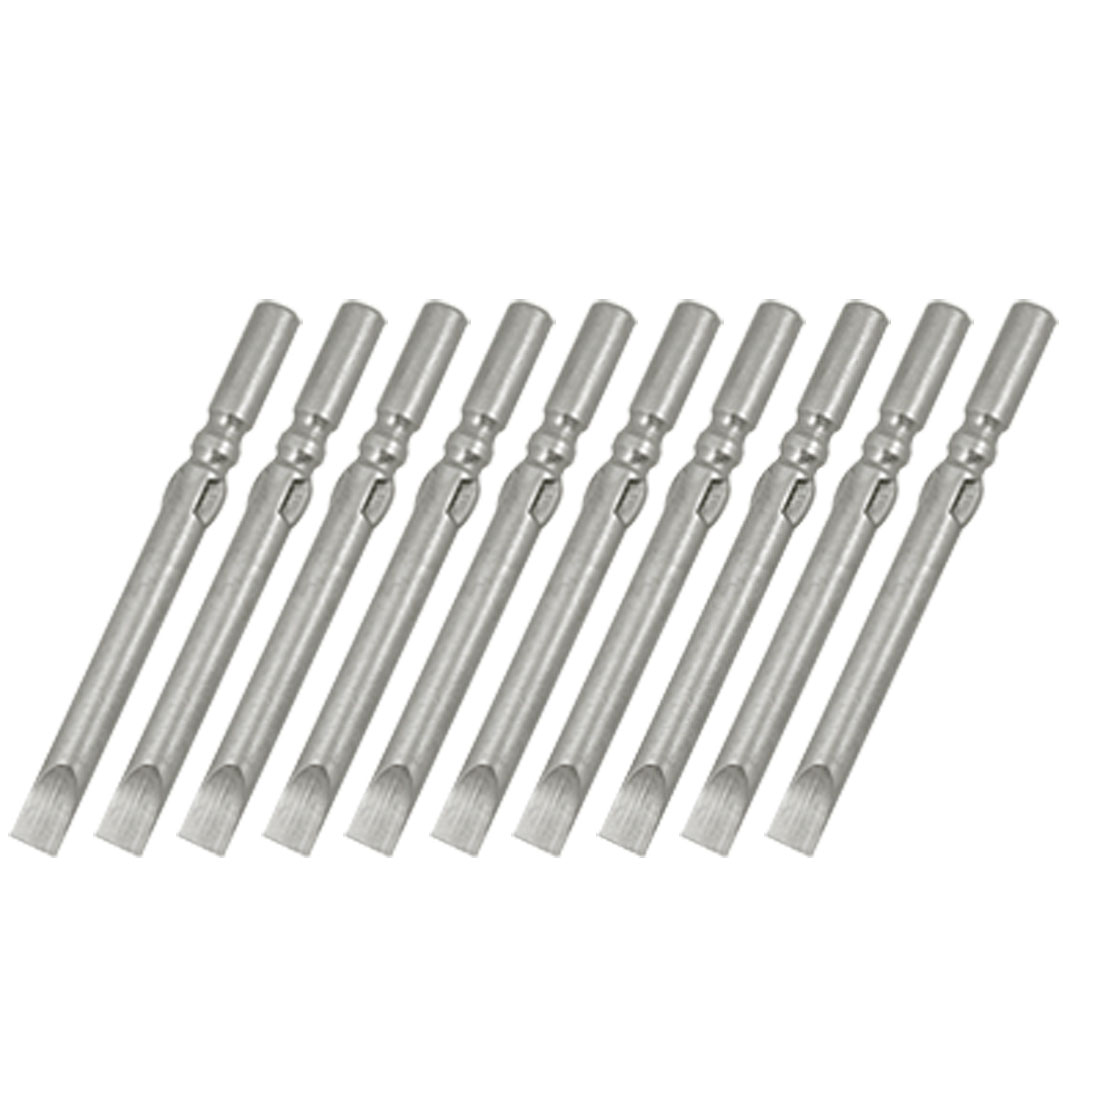 5mm Width Tip 6cm Length Slotted Screwdriver Bits 10 PCS